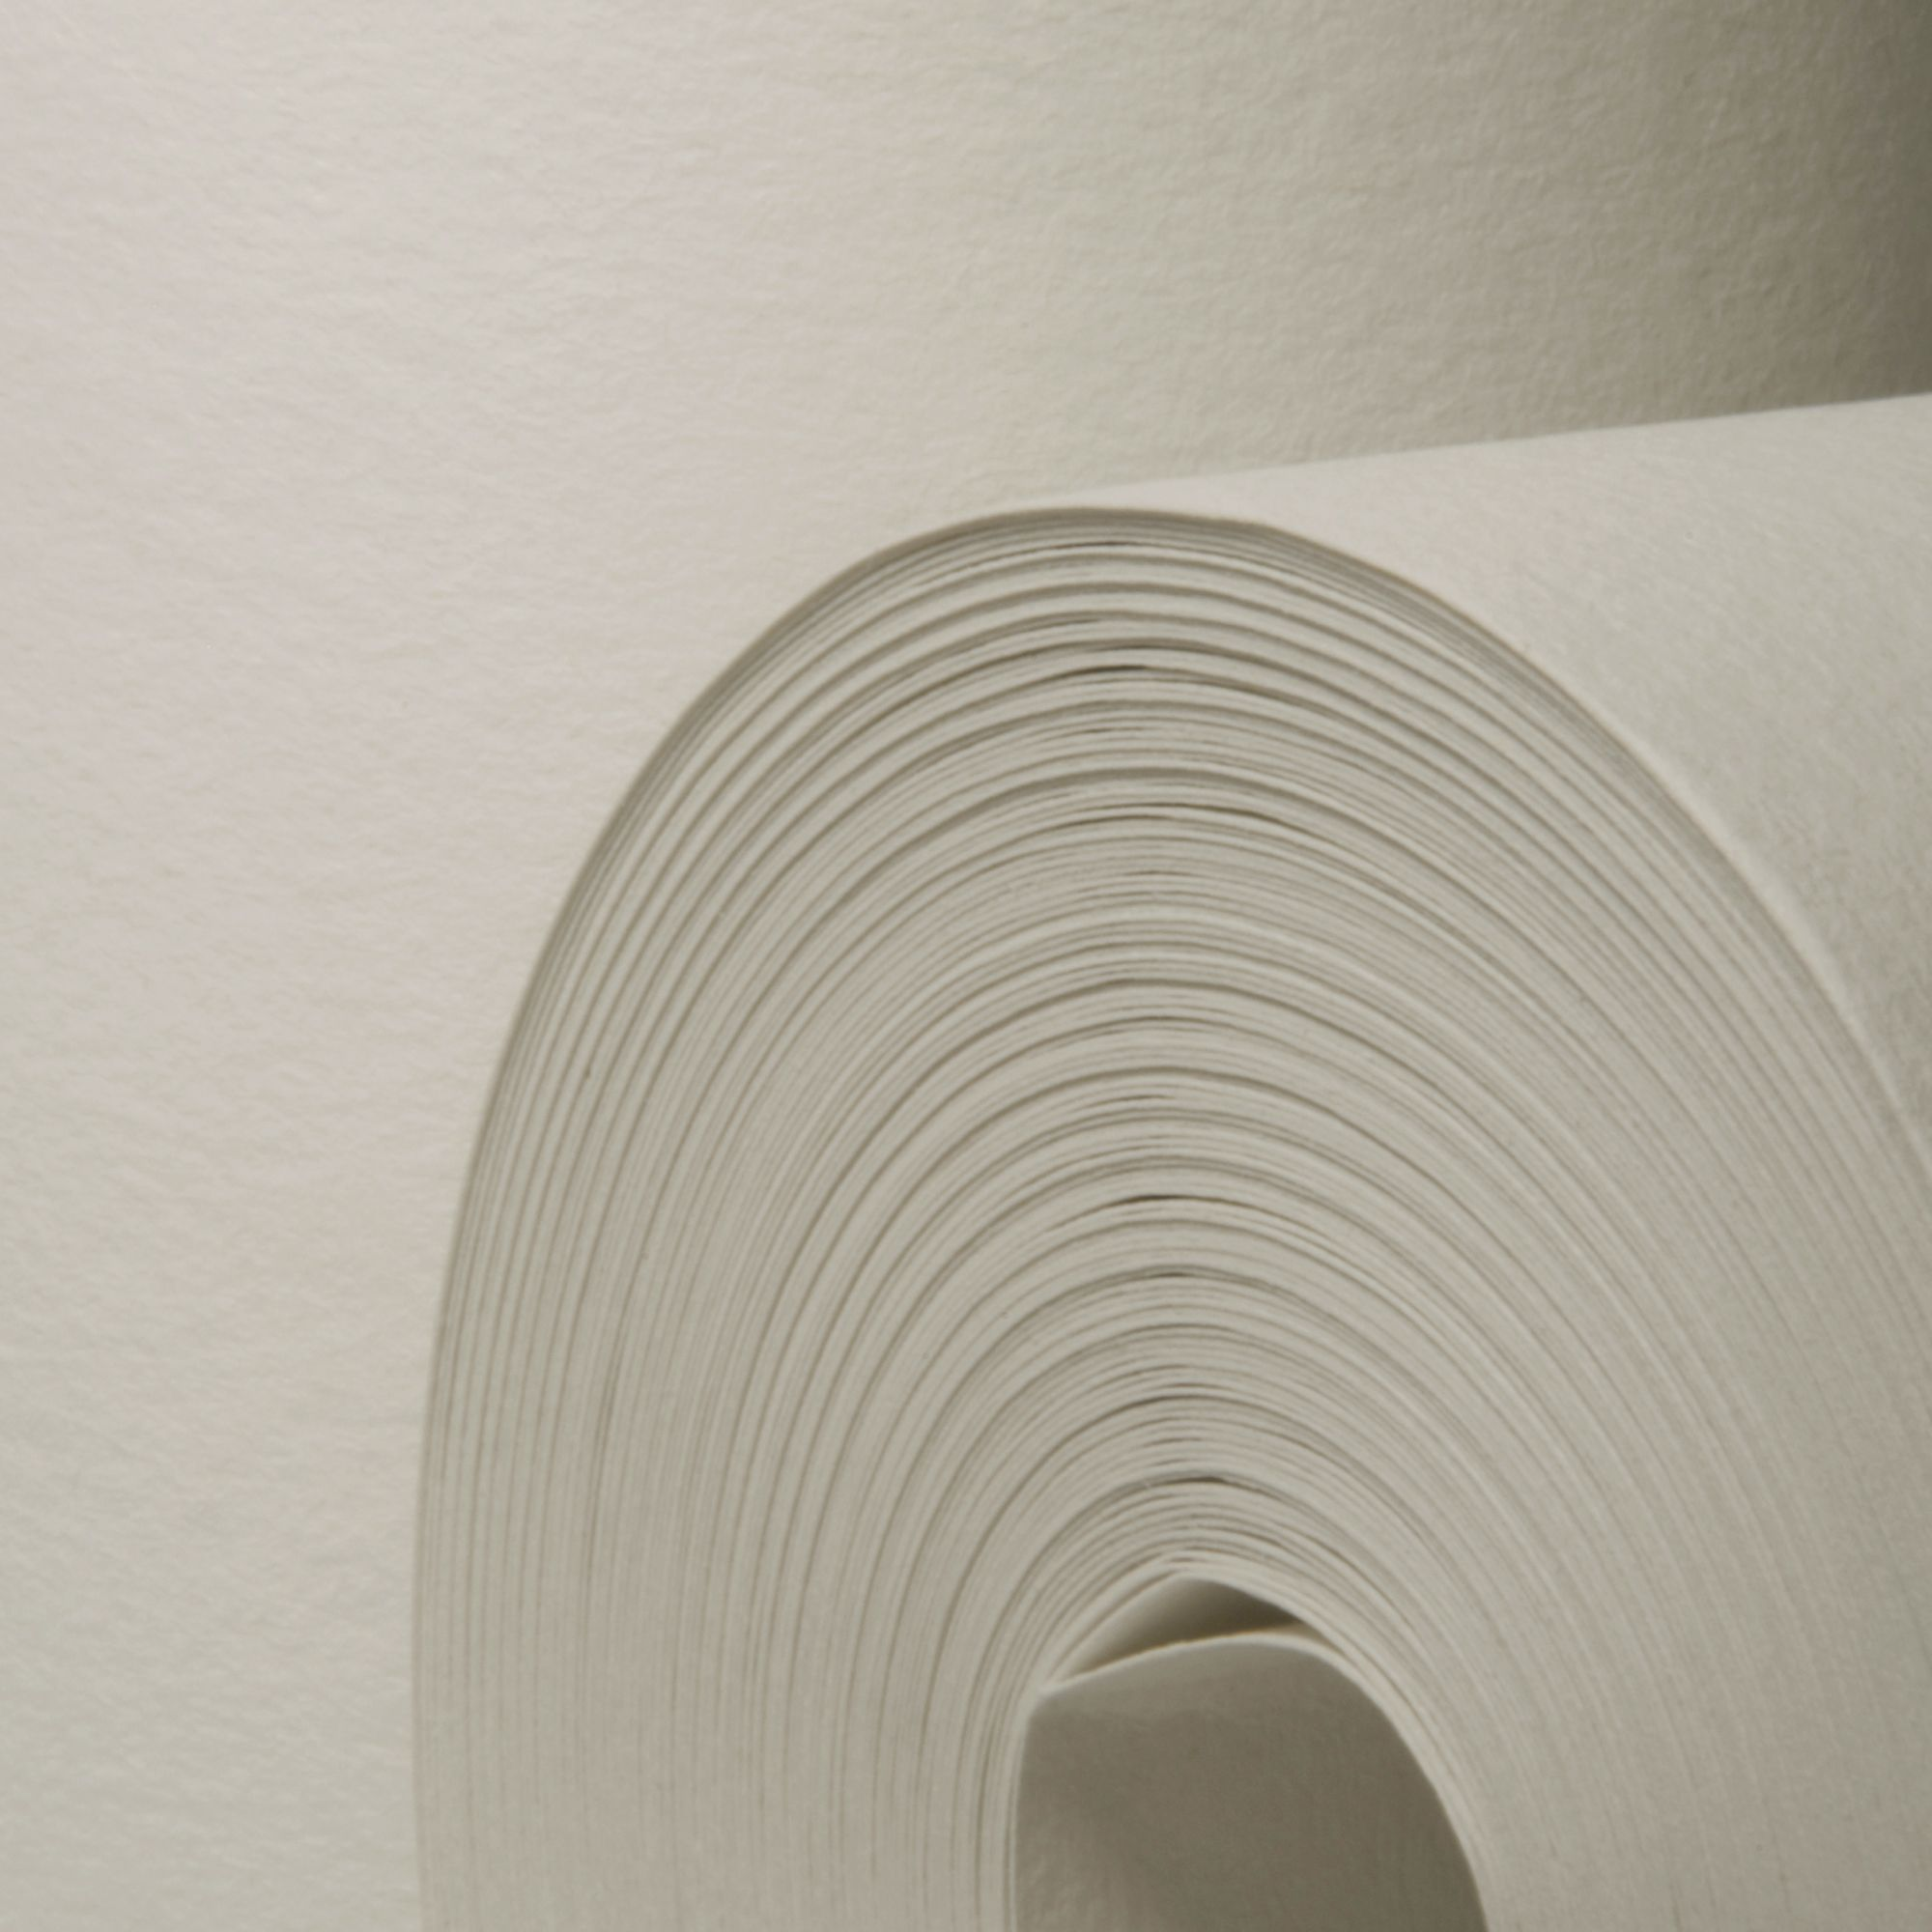 Wallpaper buying guide | Ideas & Advice | DIY at B&Q